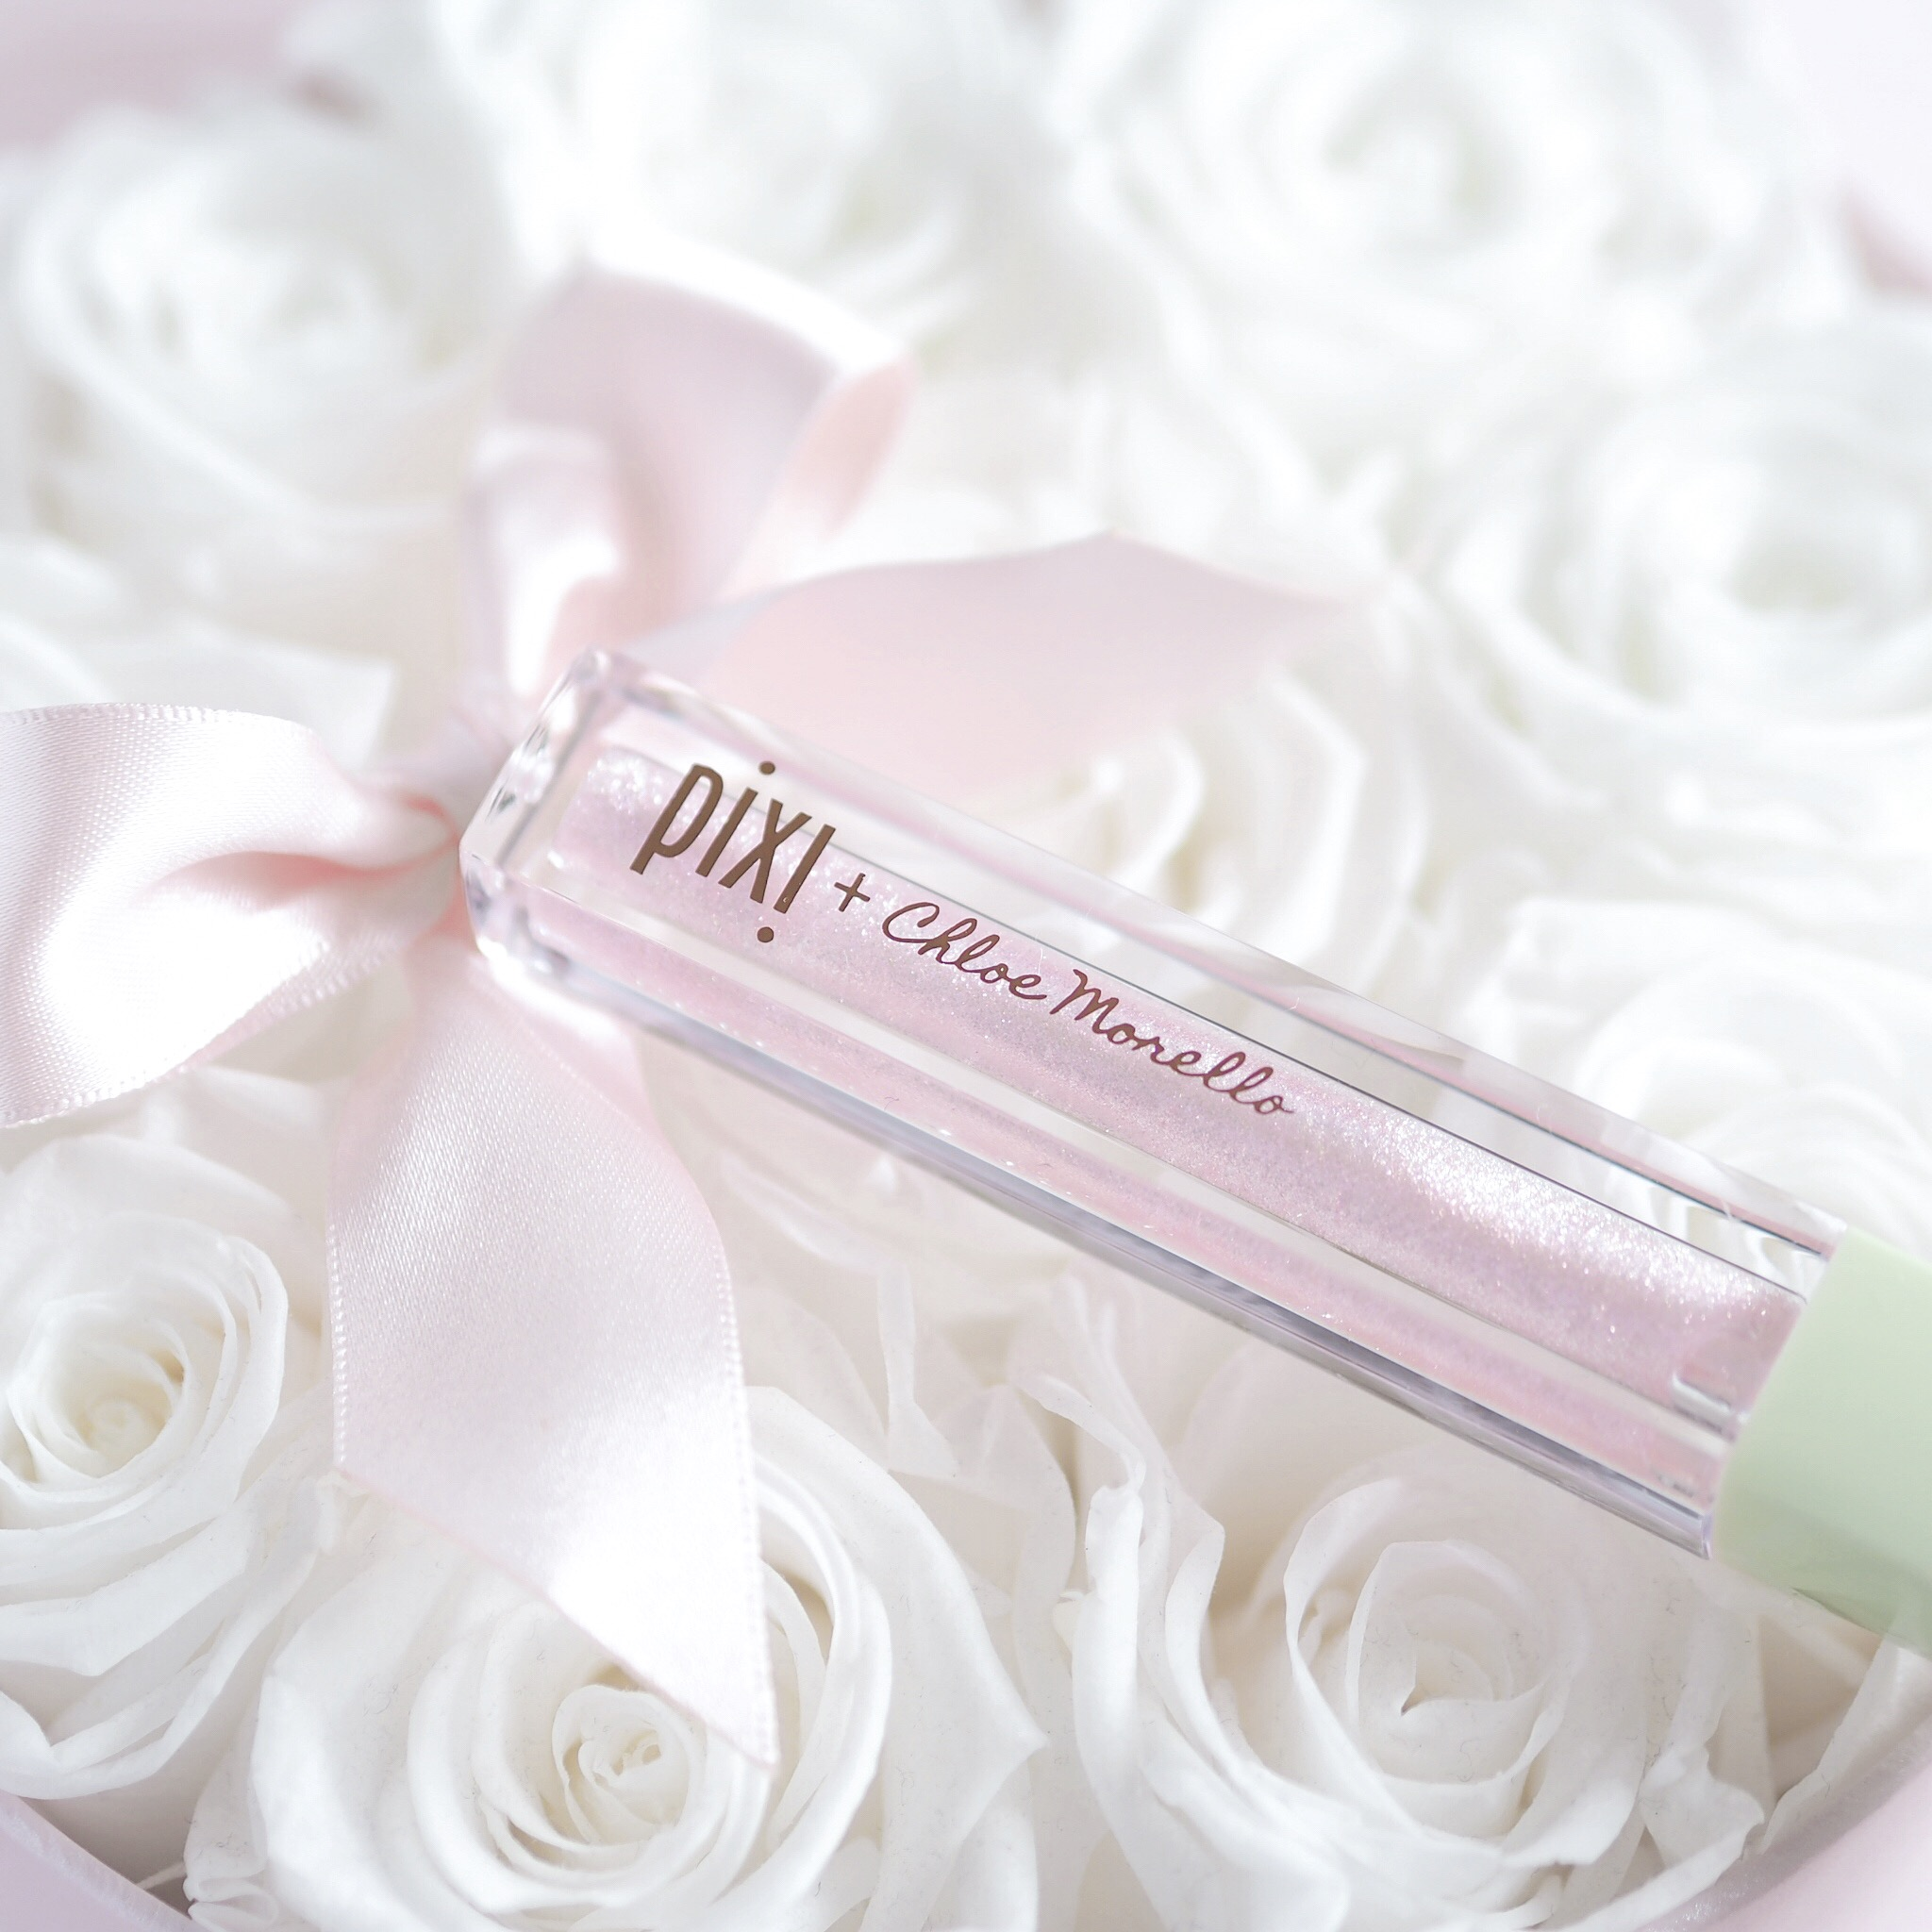 Lip Icing Chloe Morello ~ Pixi Pretties Collection by Pixi Beauty